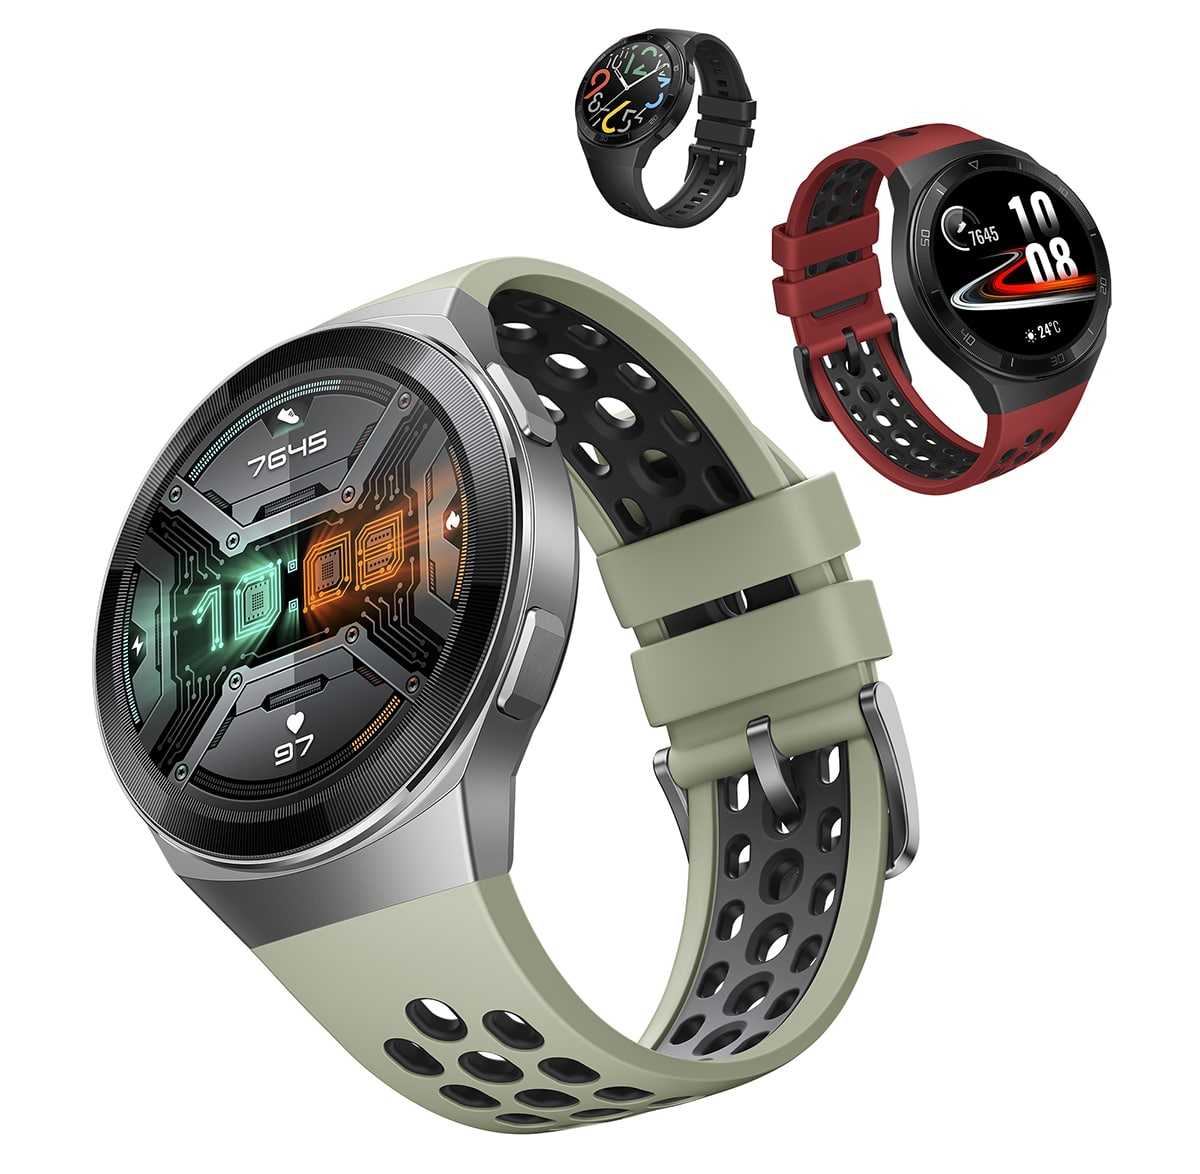 HUAWEI WATCH GT 2e Debuts with 2 week long battery life.